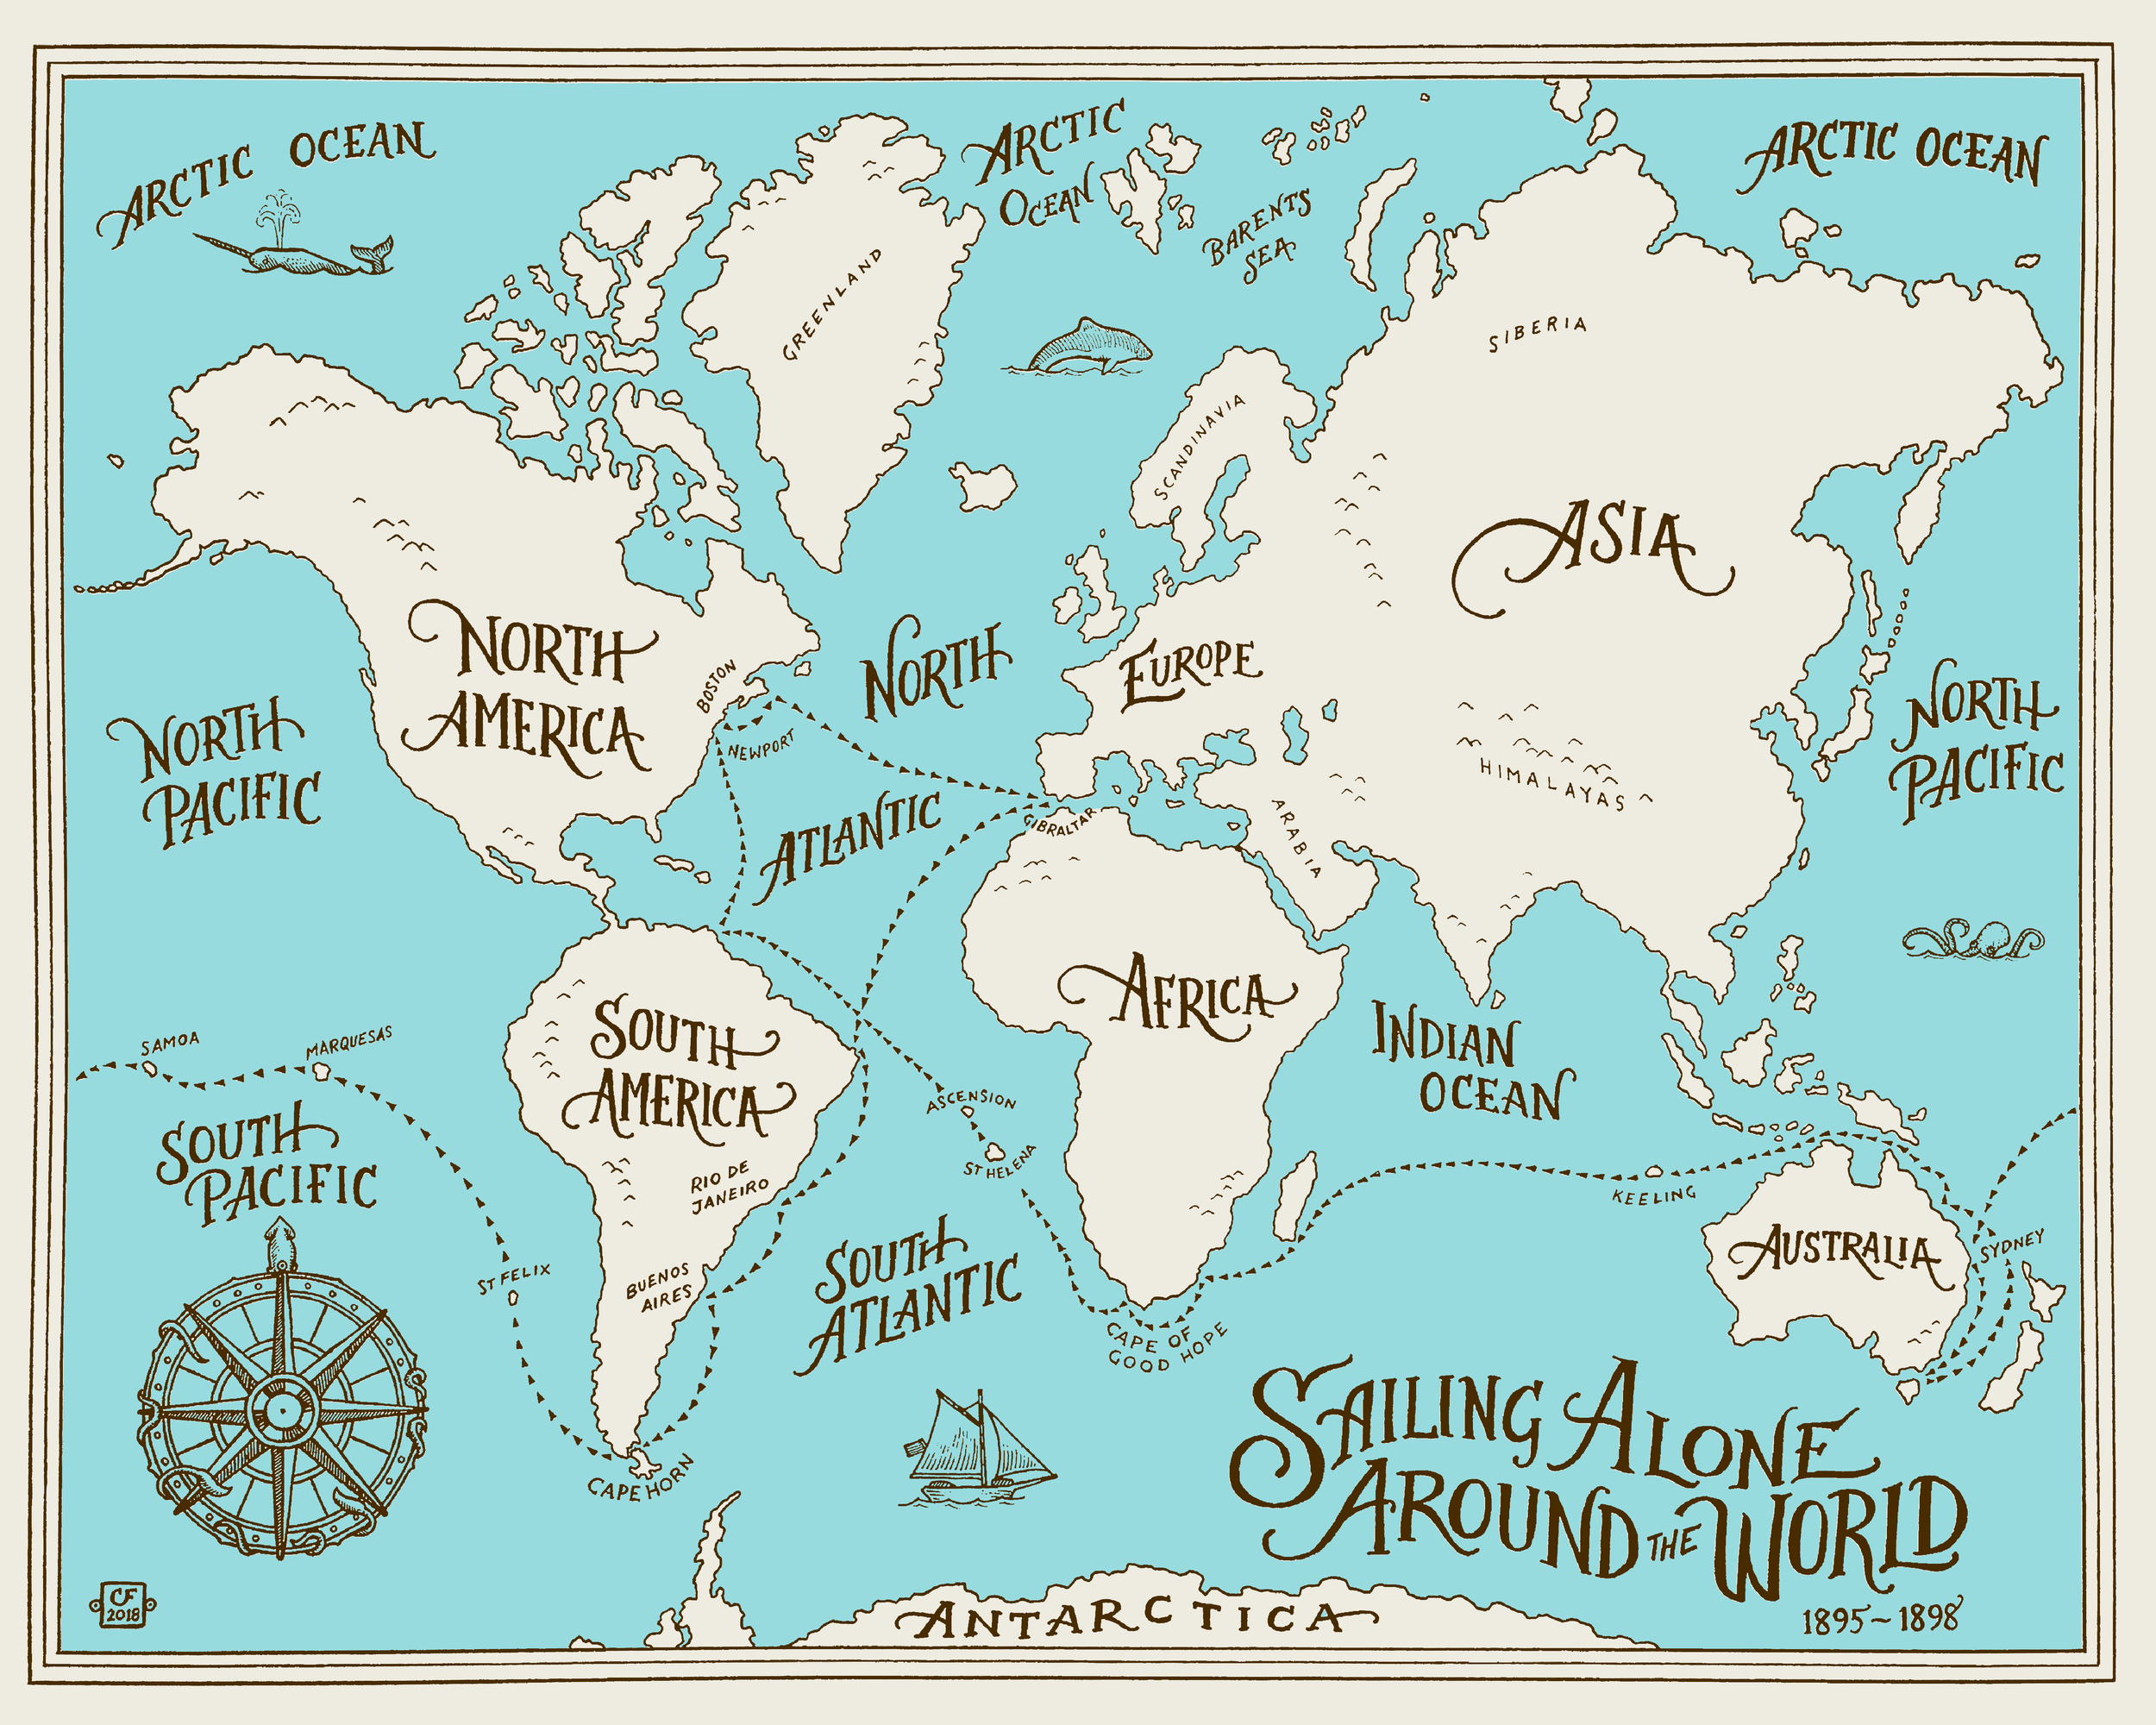 Sailing Alone Around the World Map blue on cream-02.png